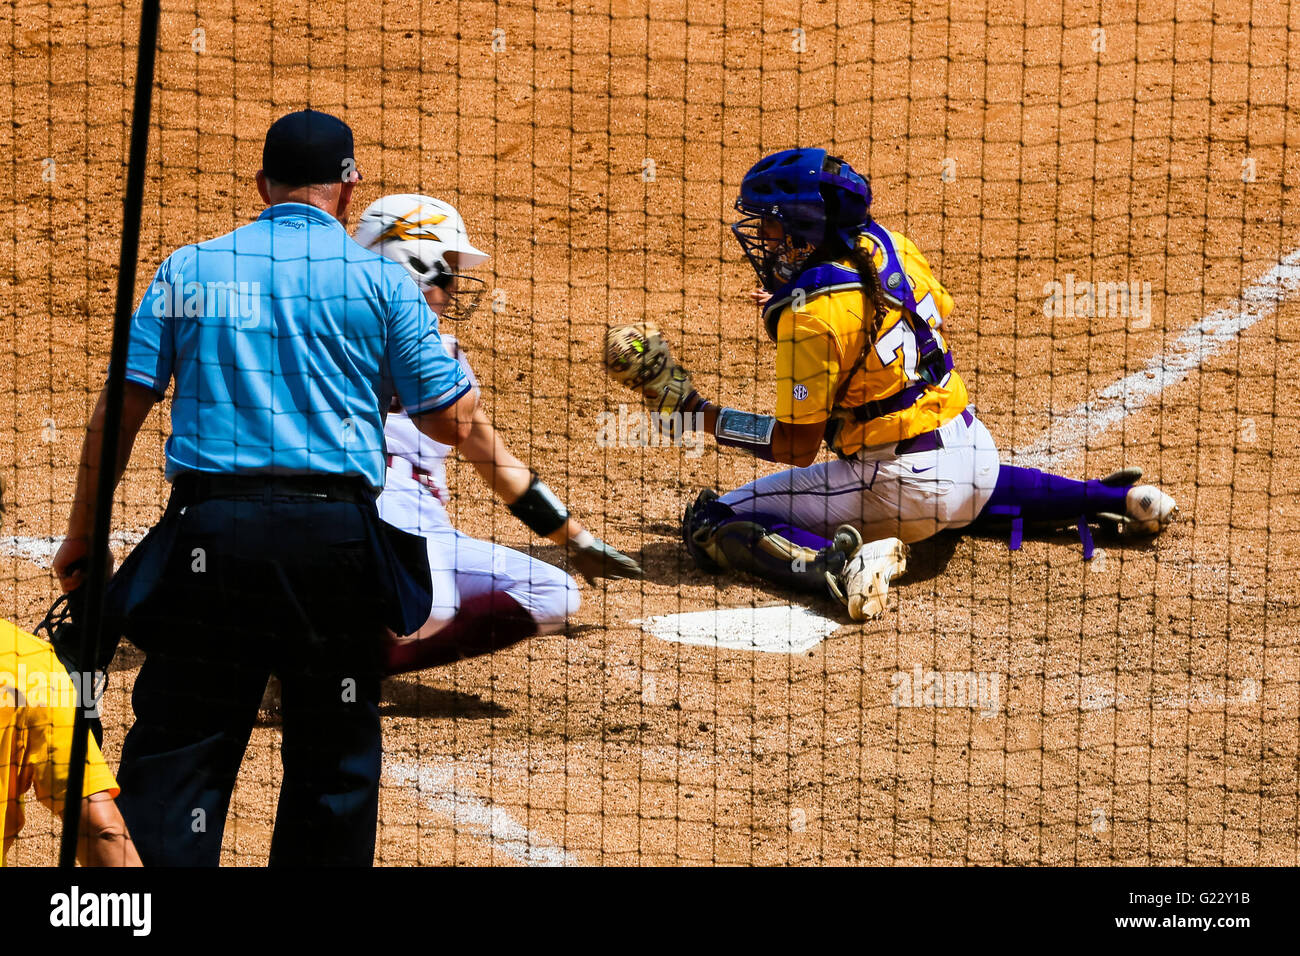 Baton Rouge, LA, USA. 22nd May, 2016. Arizona State outfielder Abby Spiel (3) touches the plate with her hand and - Stock Image